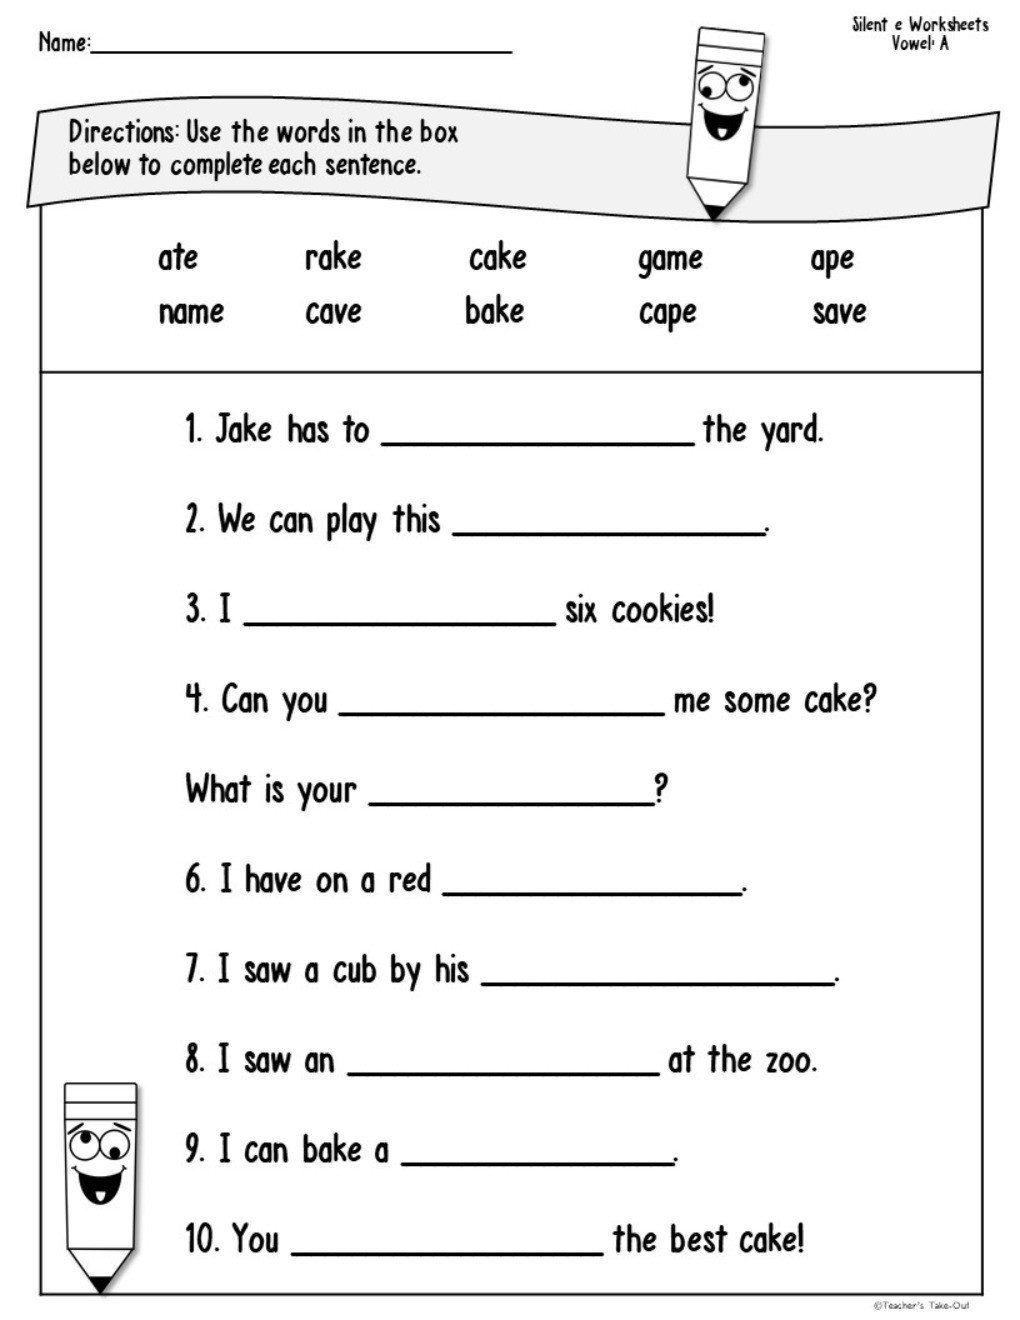 Silent E Worksheet Silent E Worksheets